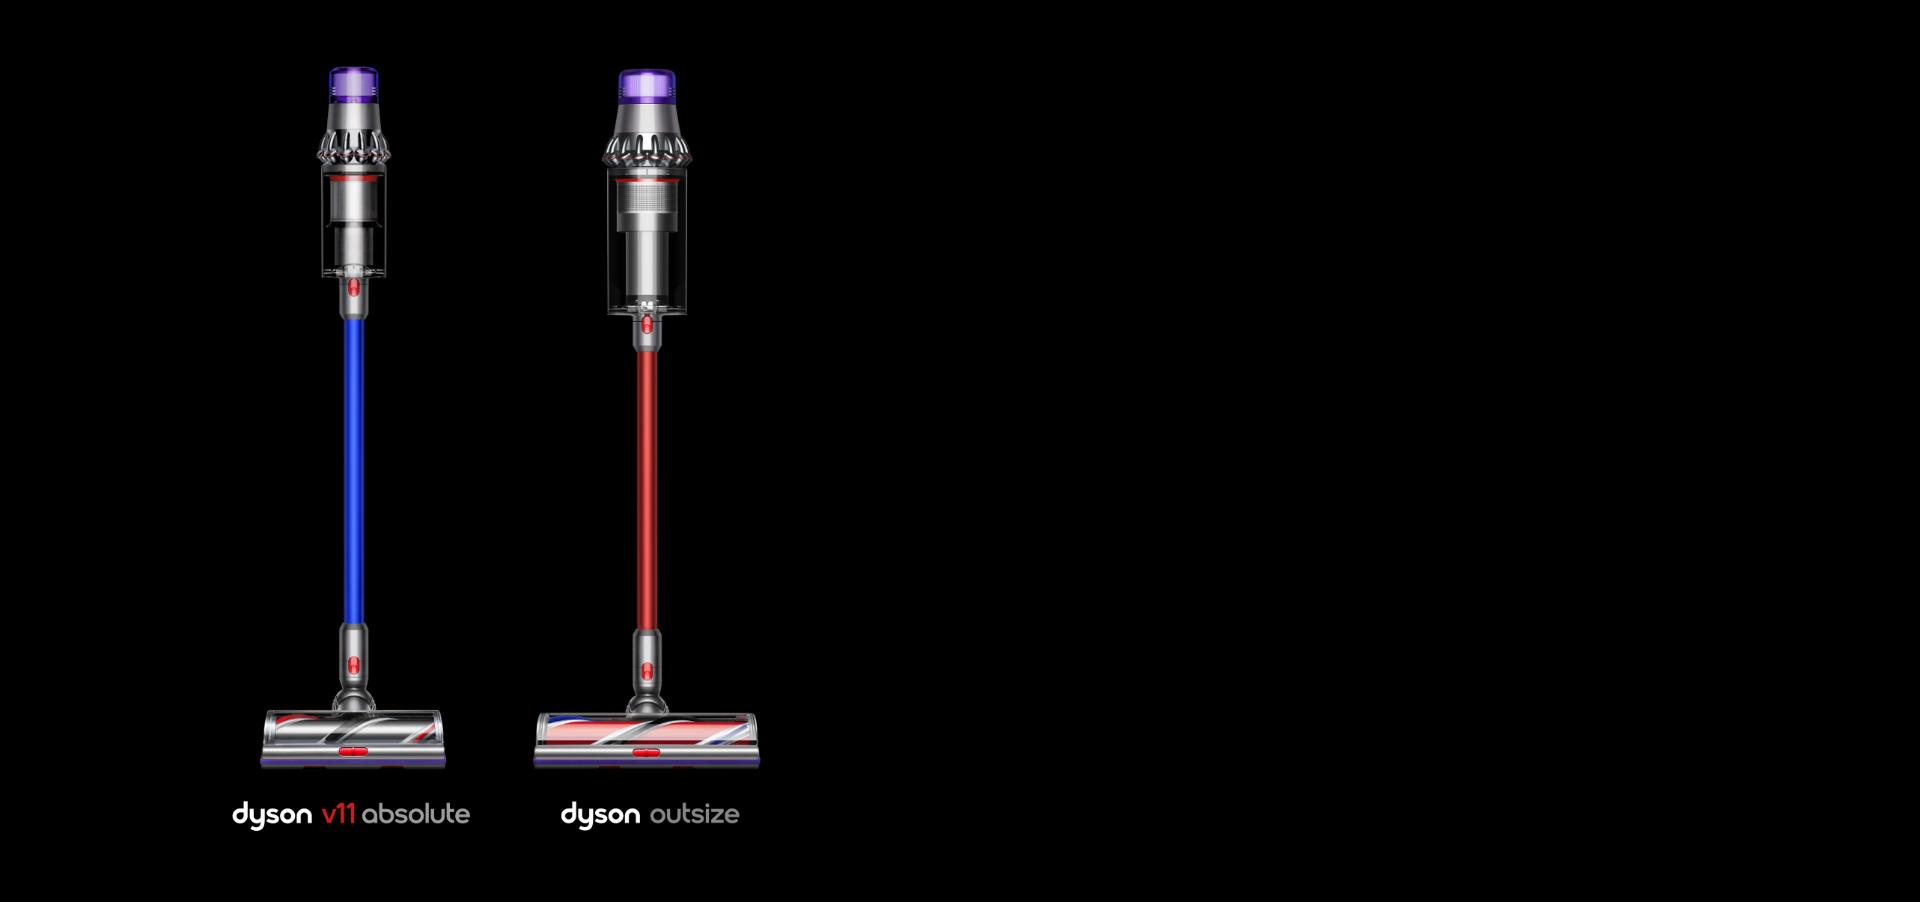 The Dyson V11 absolute and Dyson Outsize vacuum side by side